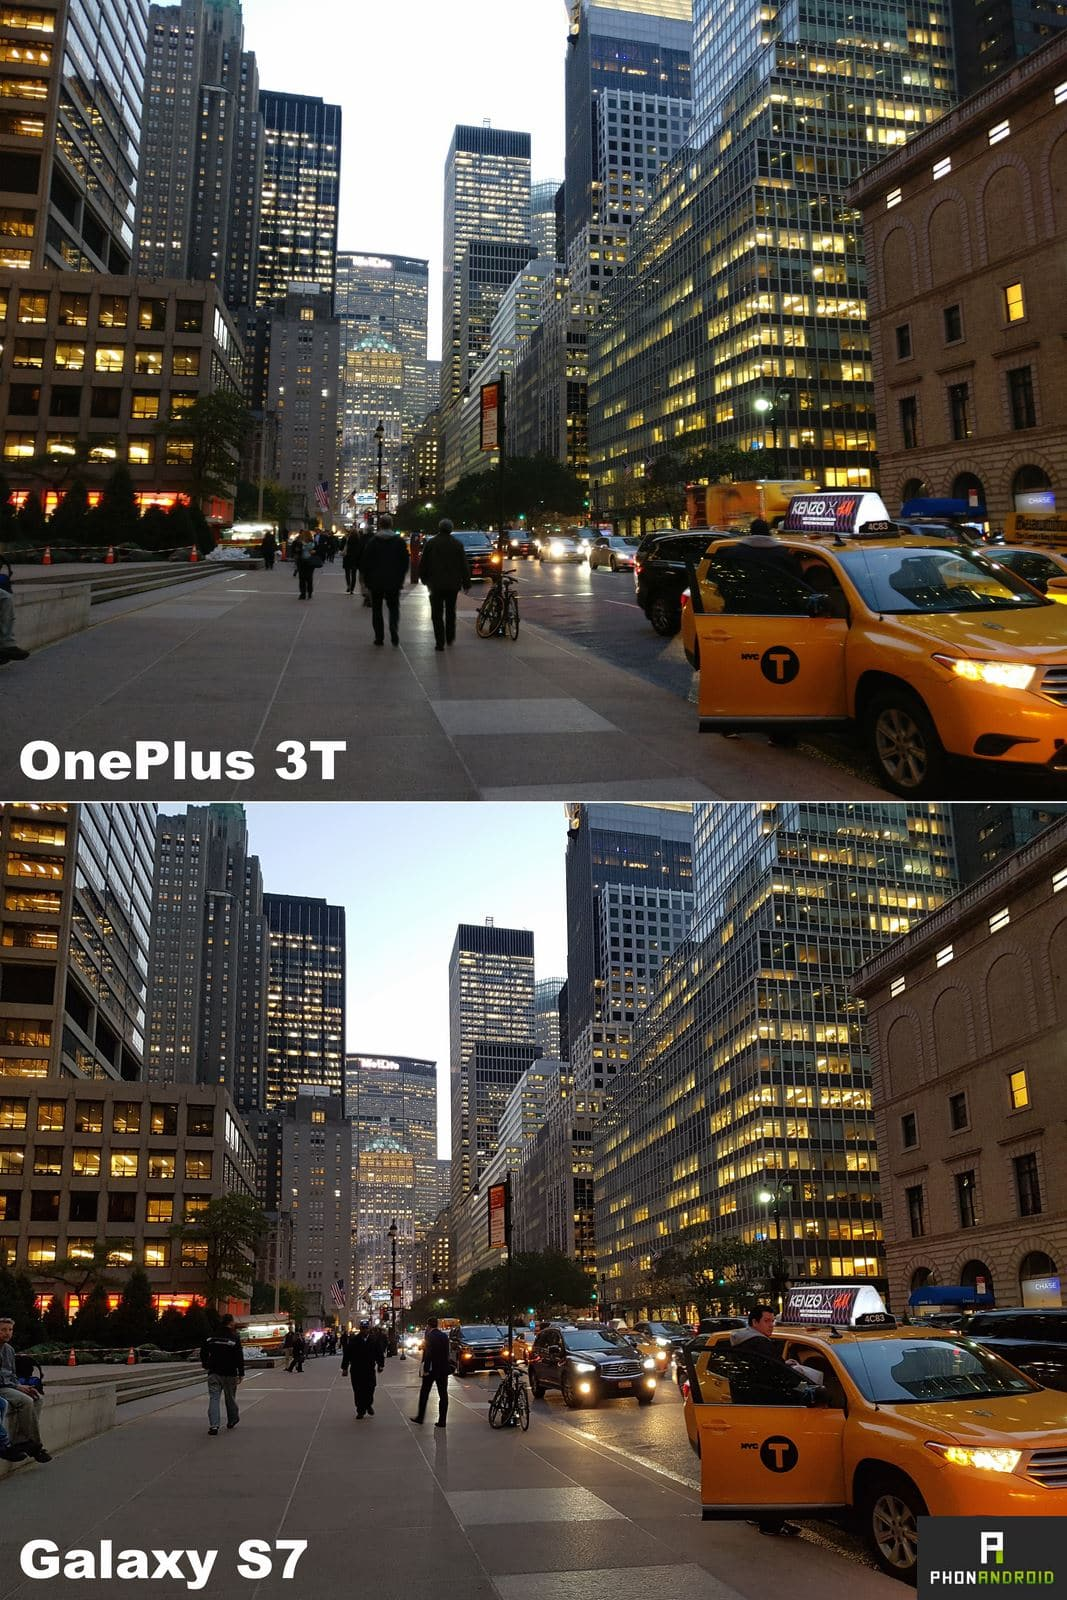 oneplus 3t galaxy s7 photo comparatif